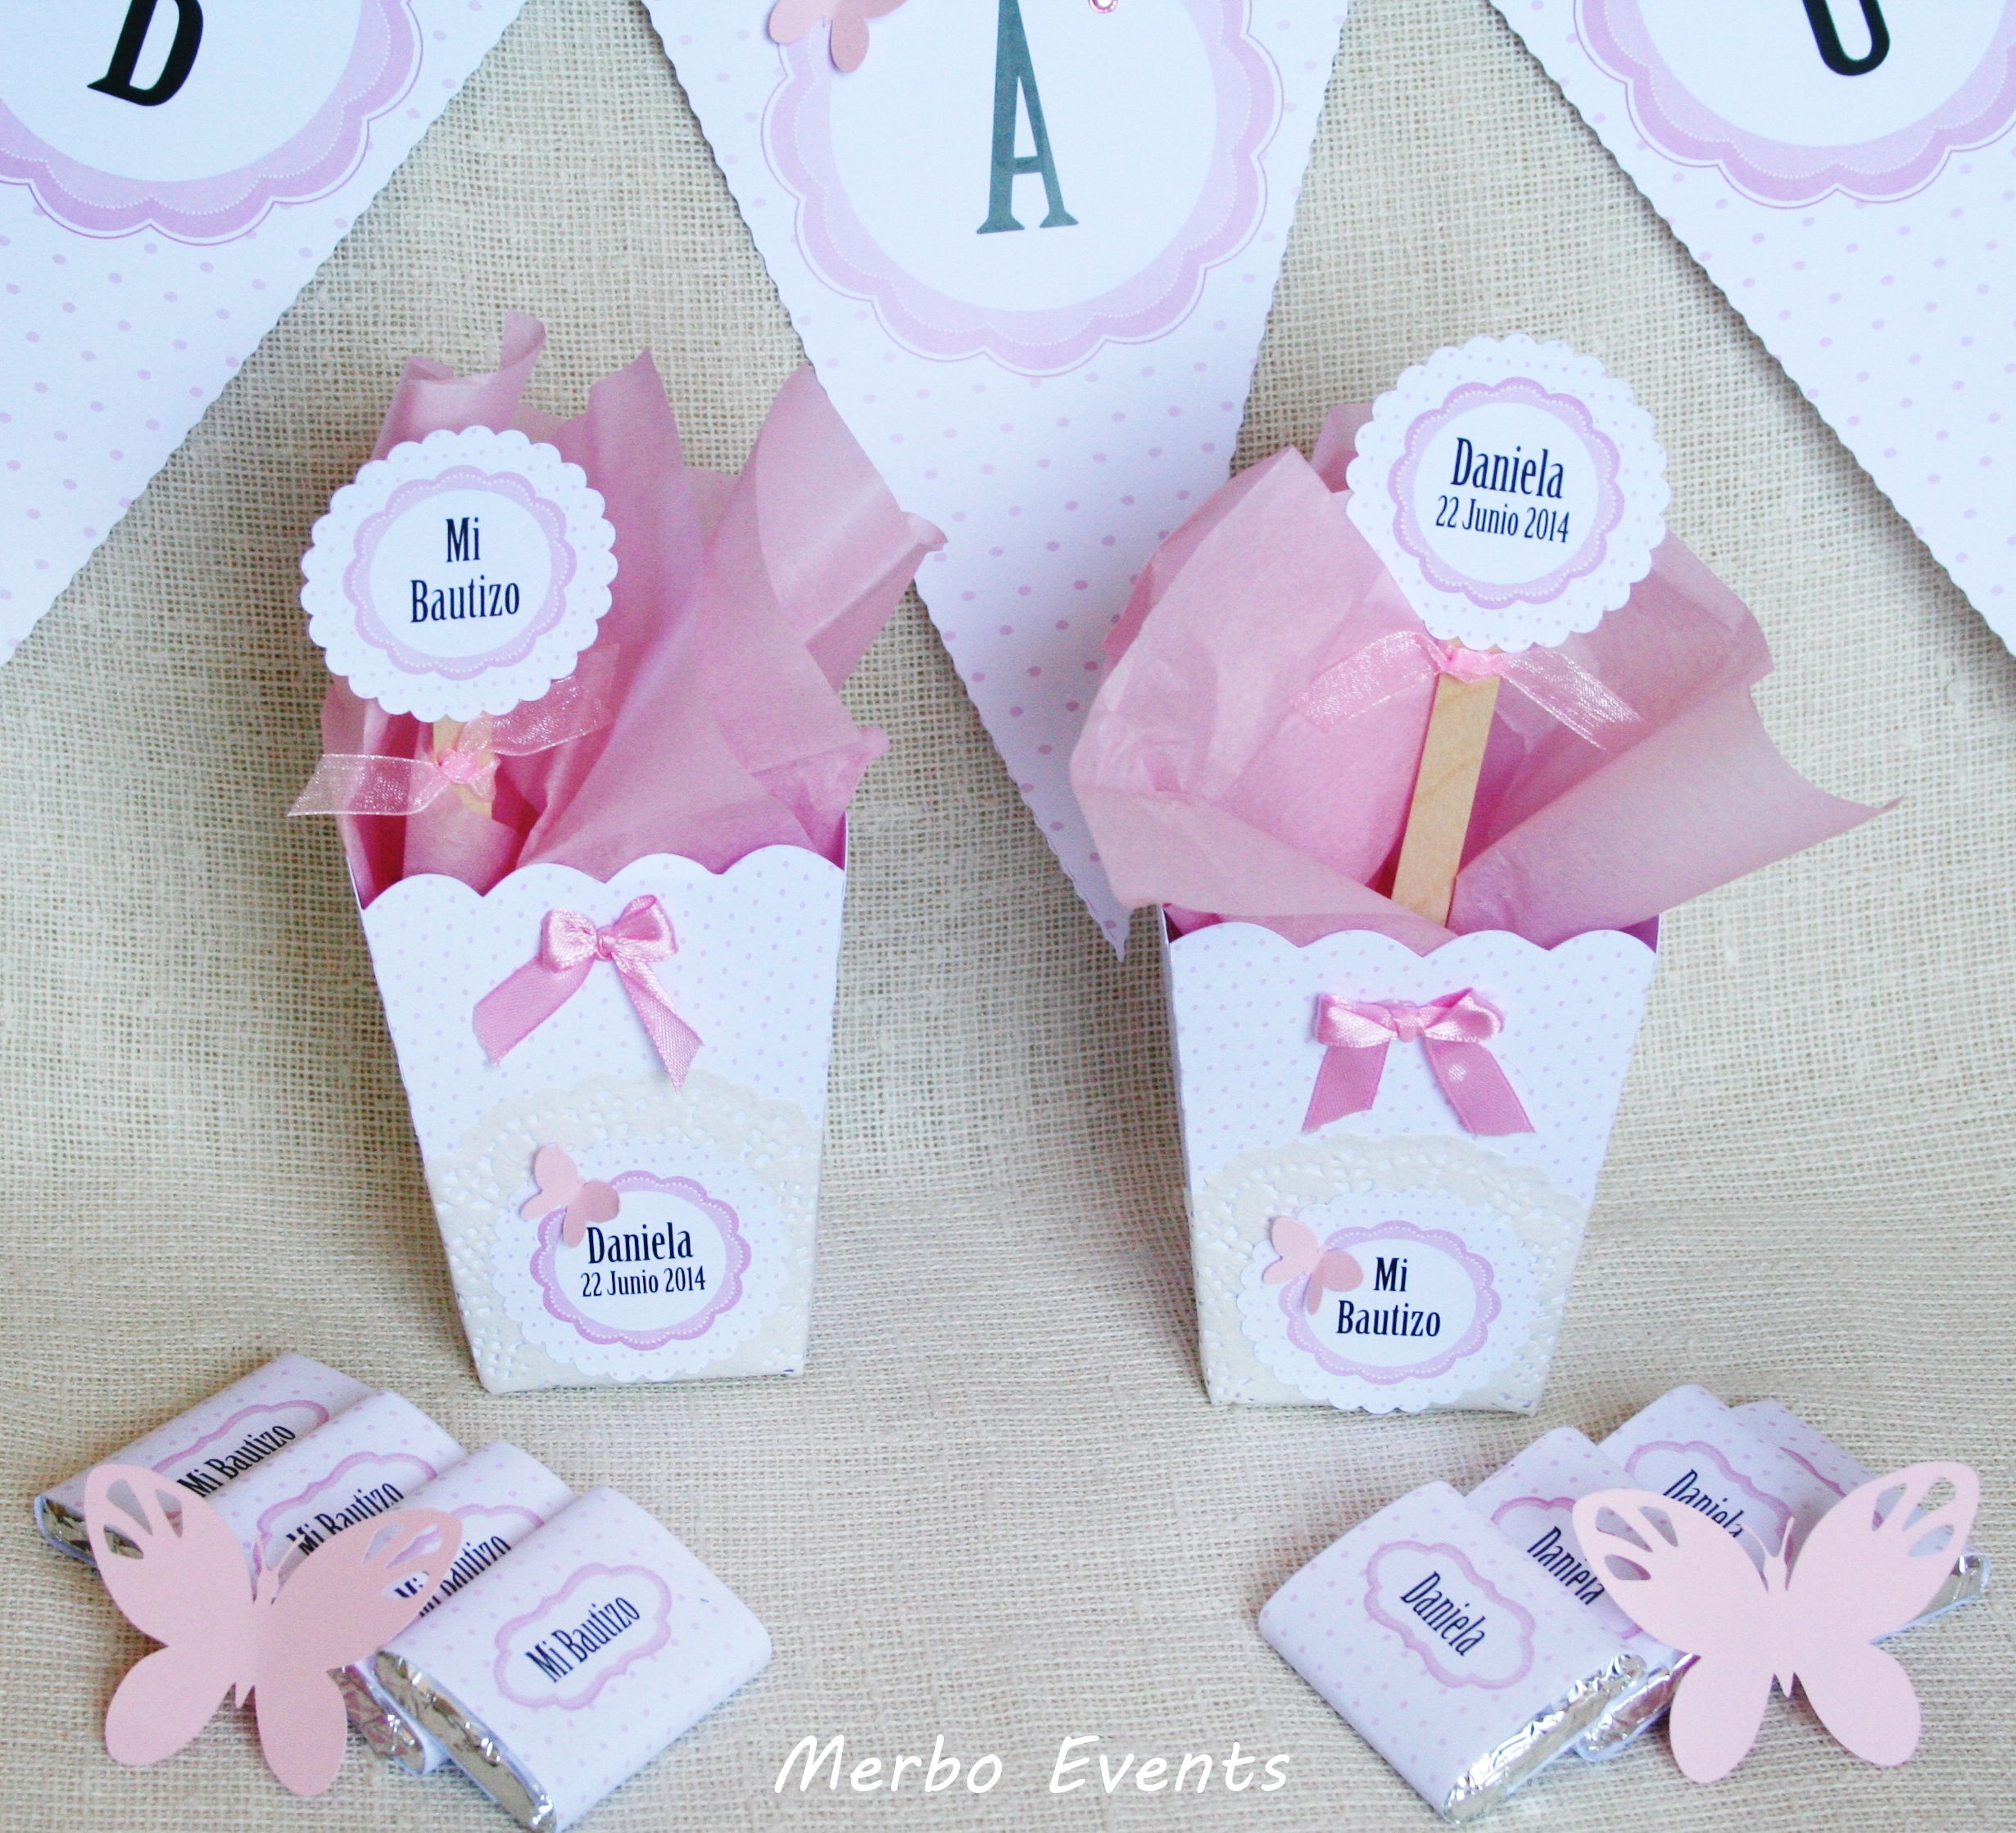 Detalles Bautizo Merbo Events